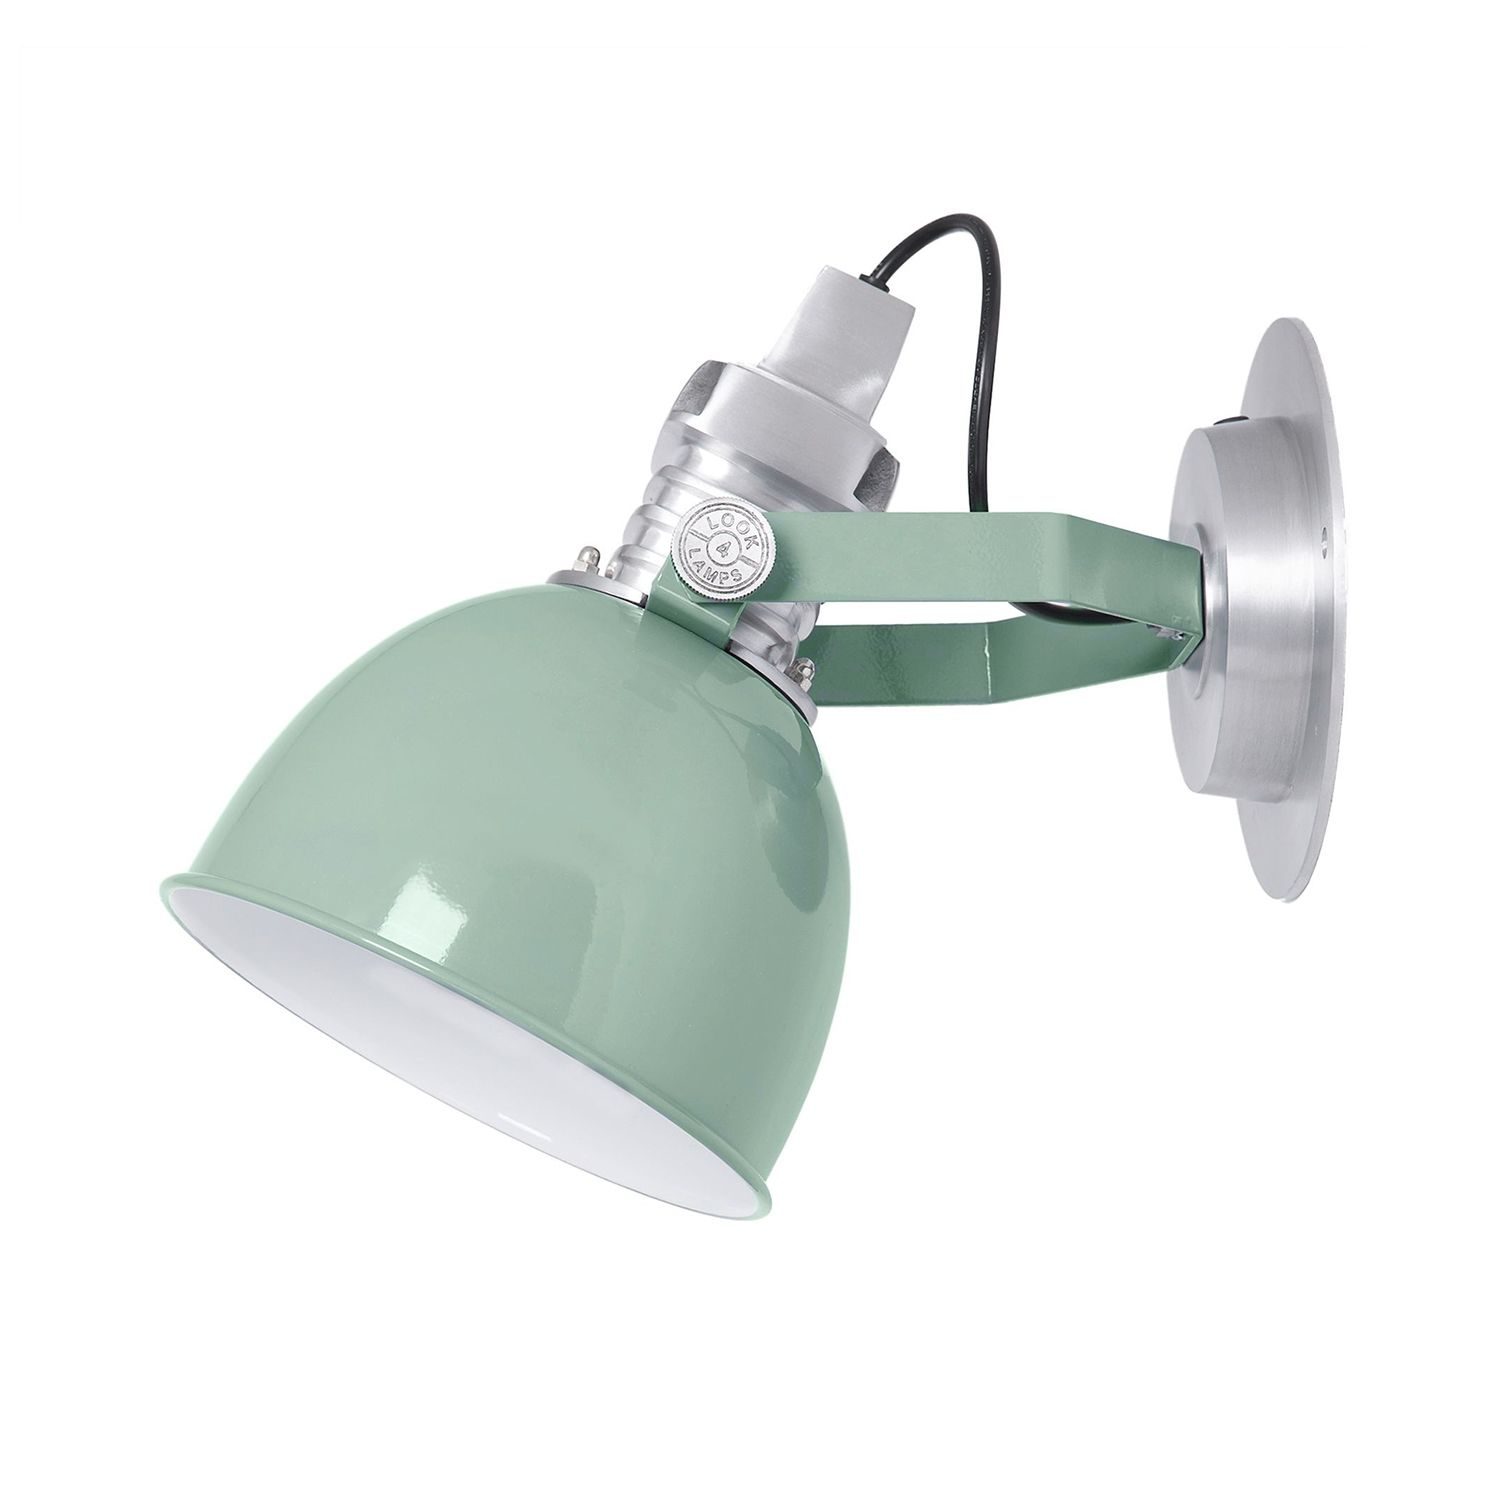 OUTLET - Captain wandlamp Look4Lamps vintage green